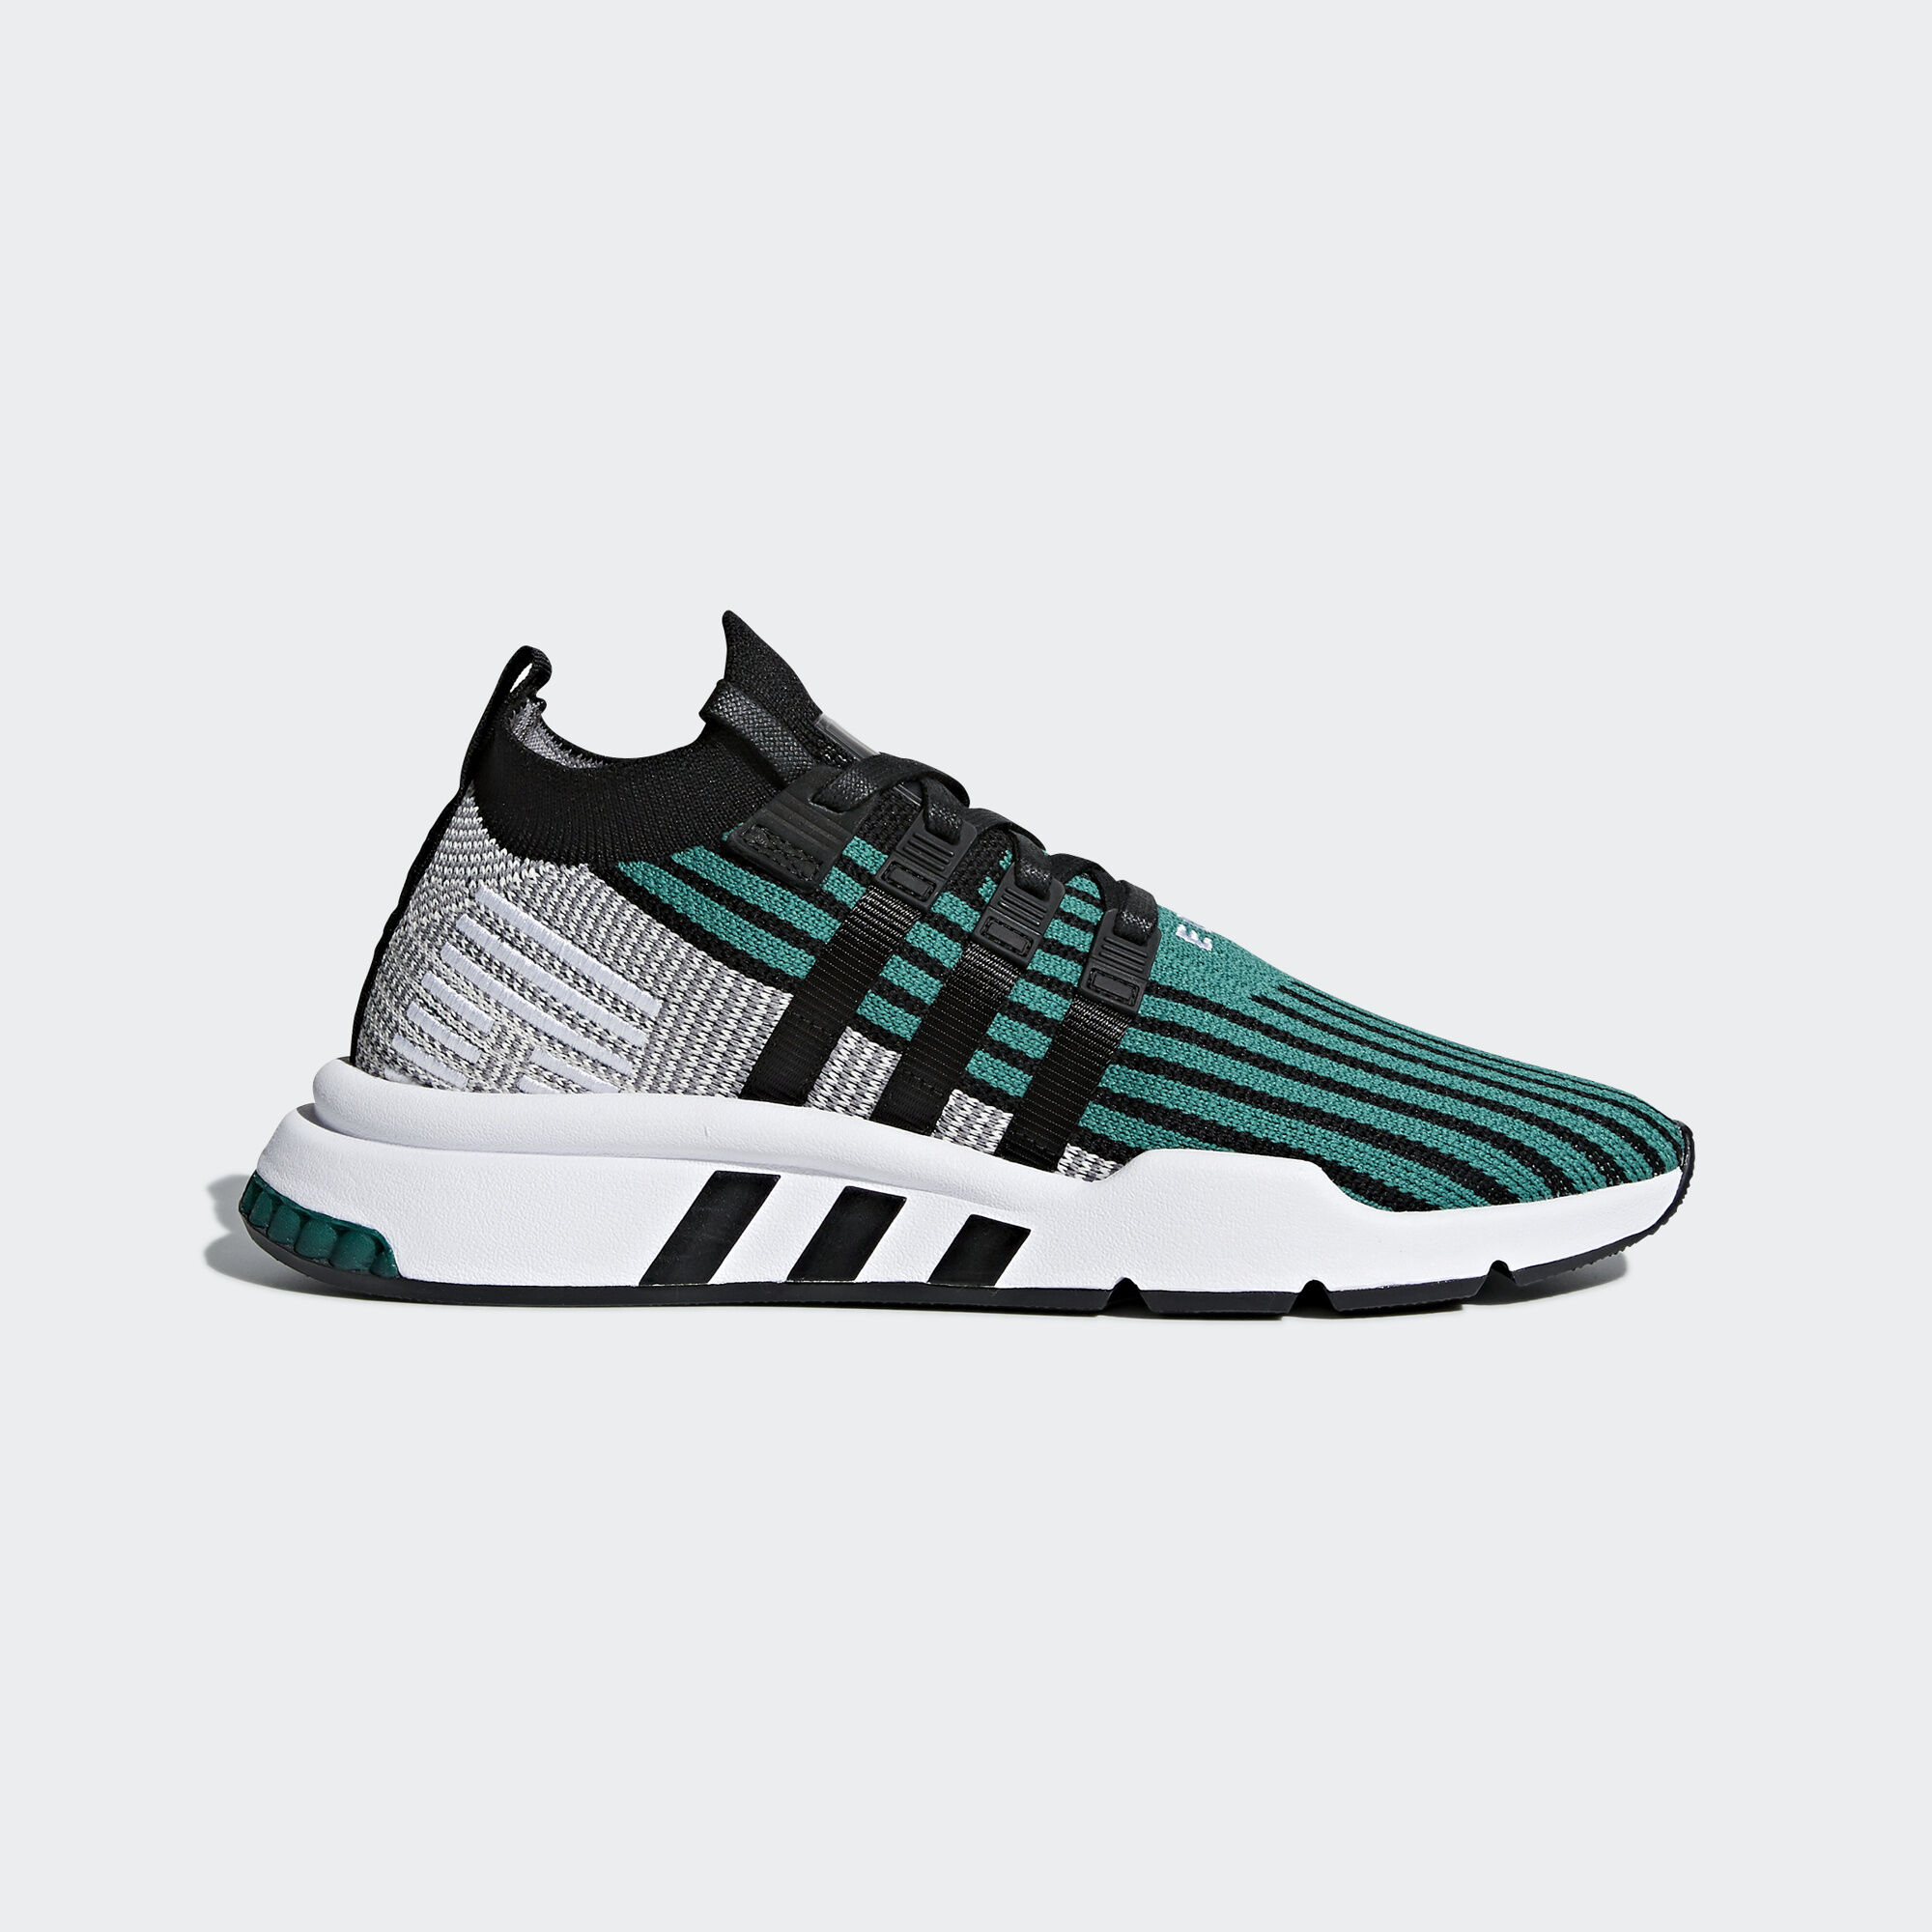 5fa23d7bbac adidas - EQT Support Mid ADV Primeknit Shoes Sub Green Core Black Core Black